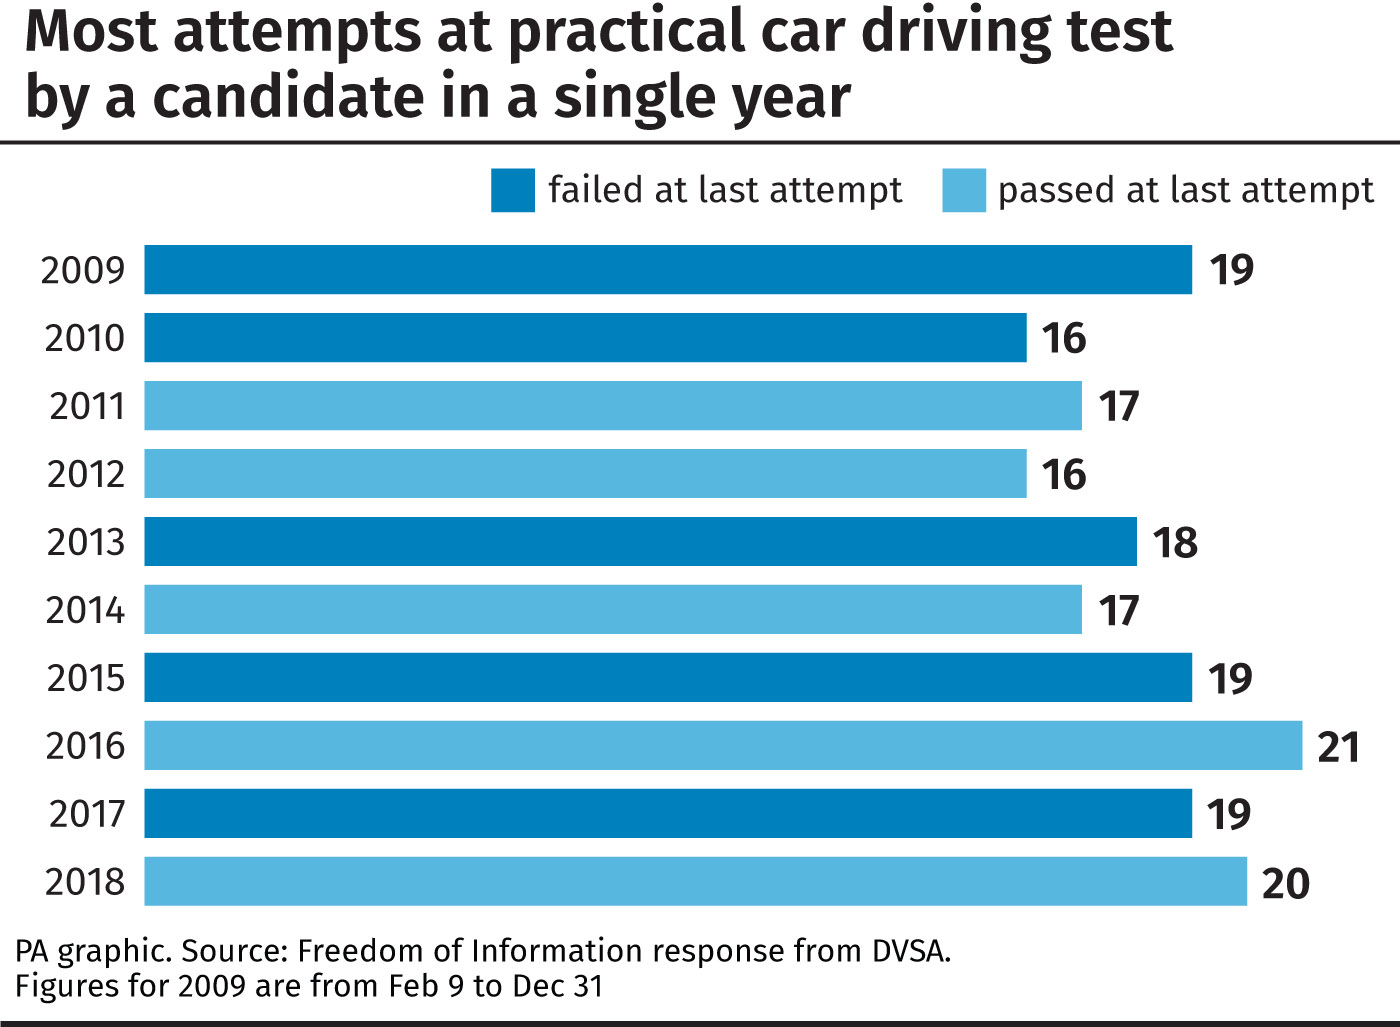 Most attempts at practical car driving test by a candidate in a single year